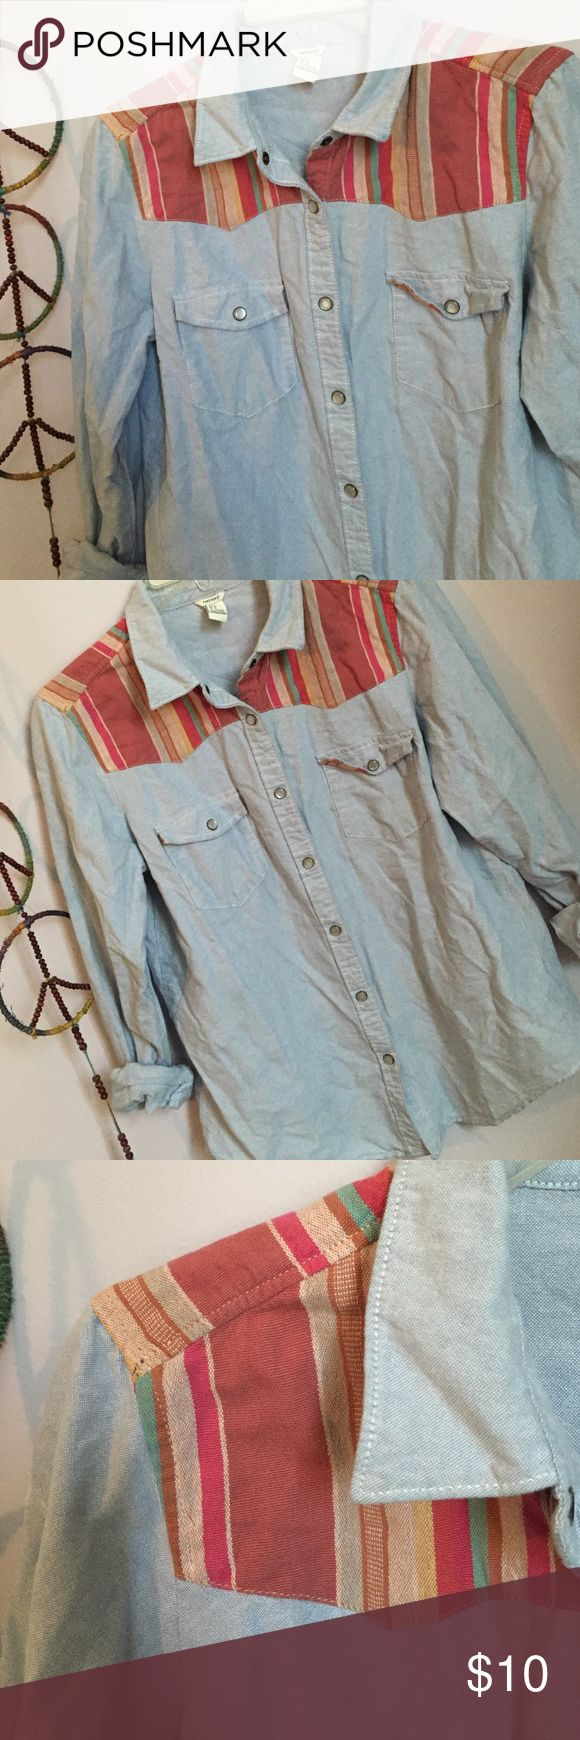 🔴Chambray Baja shoulder button down A light denim look perhaps chambray button down with a colorful Baja print on the shoulders and back. Excellent condition Forever 21 Tops Button Down Shirts